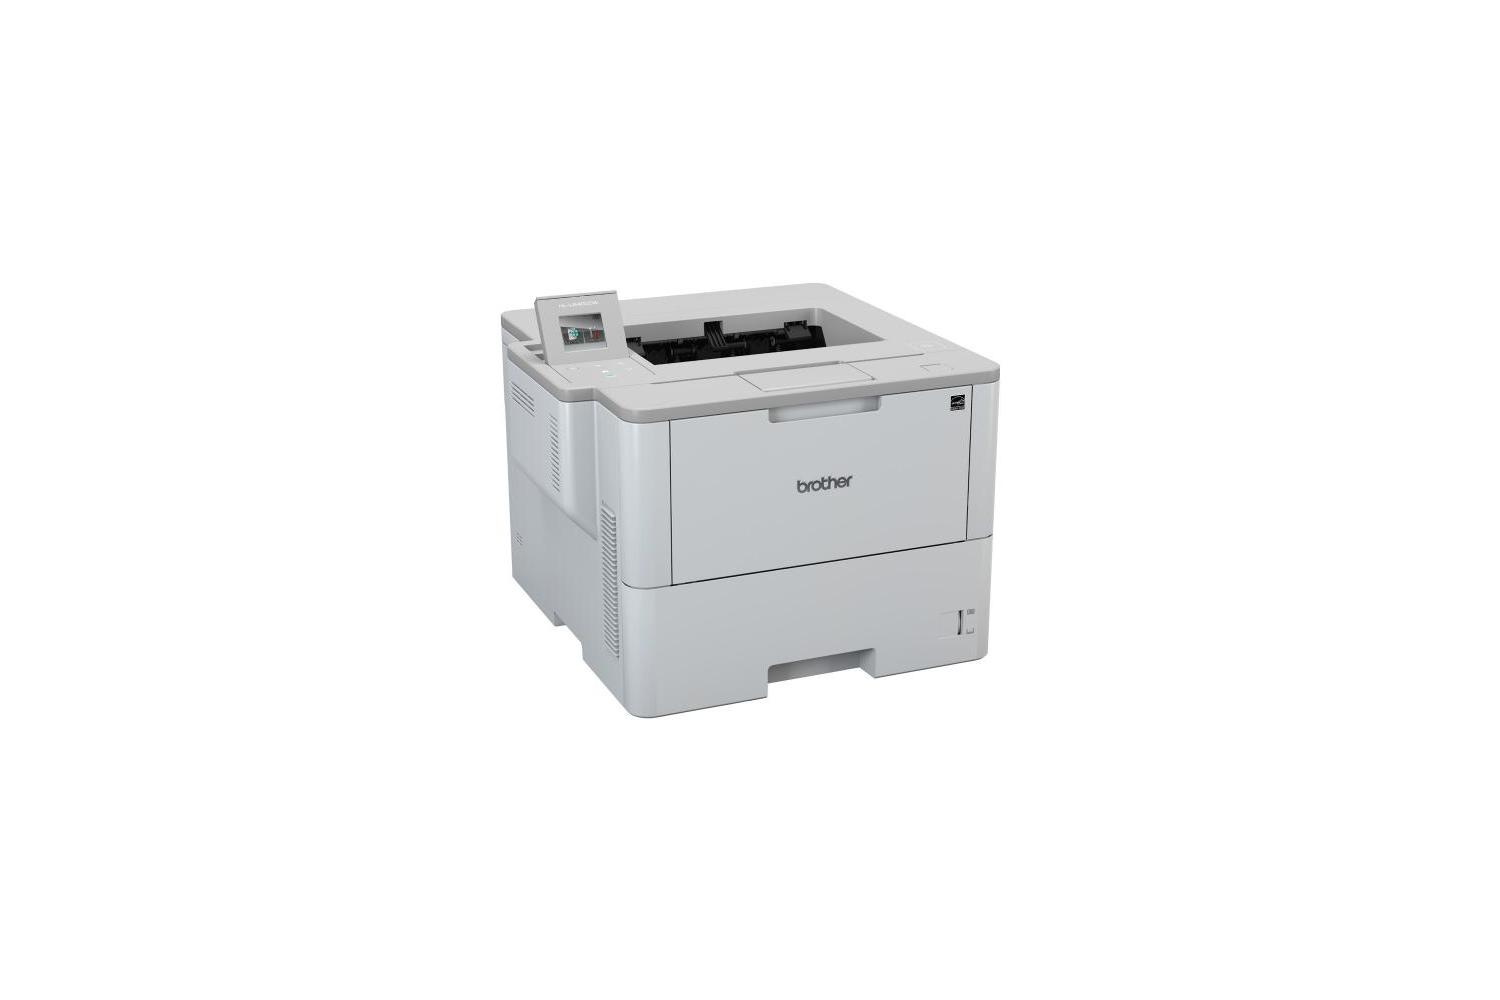 Laserprinter Brother HL-L6400DW 1